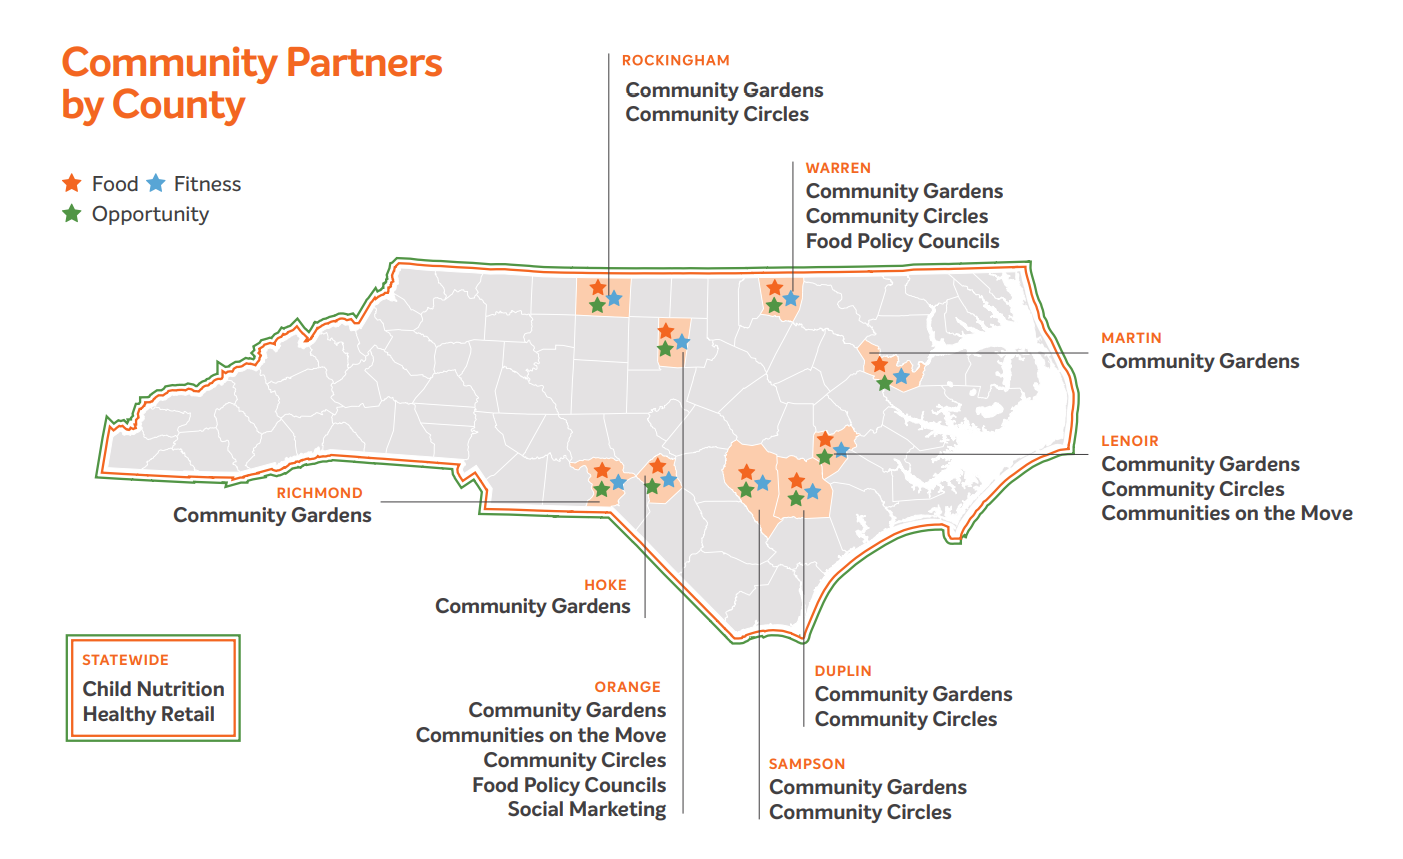 Map showing locations of FFORC projects in North Carolina. Child Nutrition and Healthy Retail are statewide projects. In Rockingham County: community gardens and community circles. In Warren County: community gardens, community circles, and food policy councils. In Martin County: community gardens. In Lenoir County: community gardens, community circles, and communities on the move. In Duplin County: community gardens and community circles. In Sampson County: community gardens and community circles. In Orange County, community gardens, community circles, communities on the move, food policy councils, and social marketing. In Hoke County: community gardens. In Richmond County: community gardens.